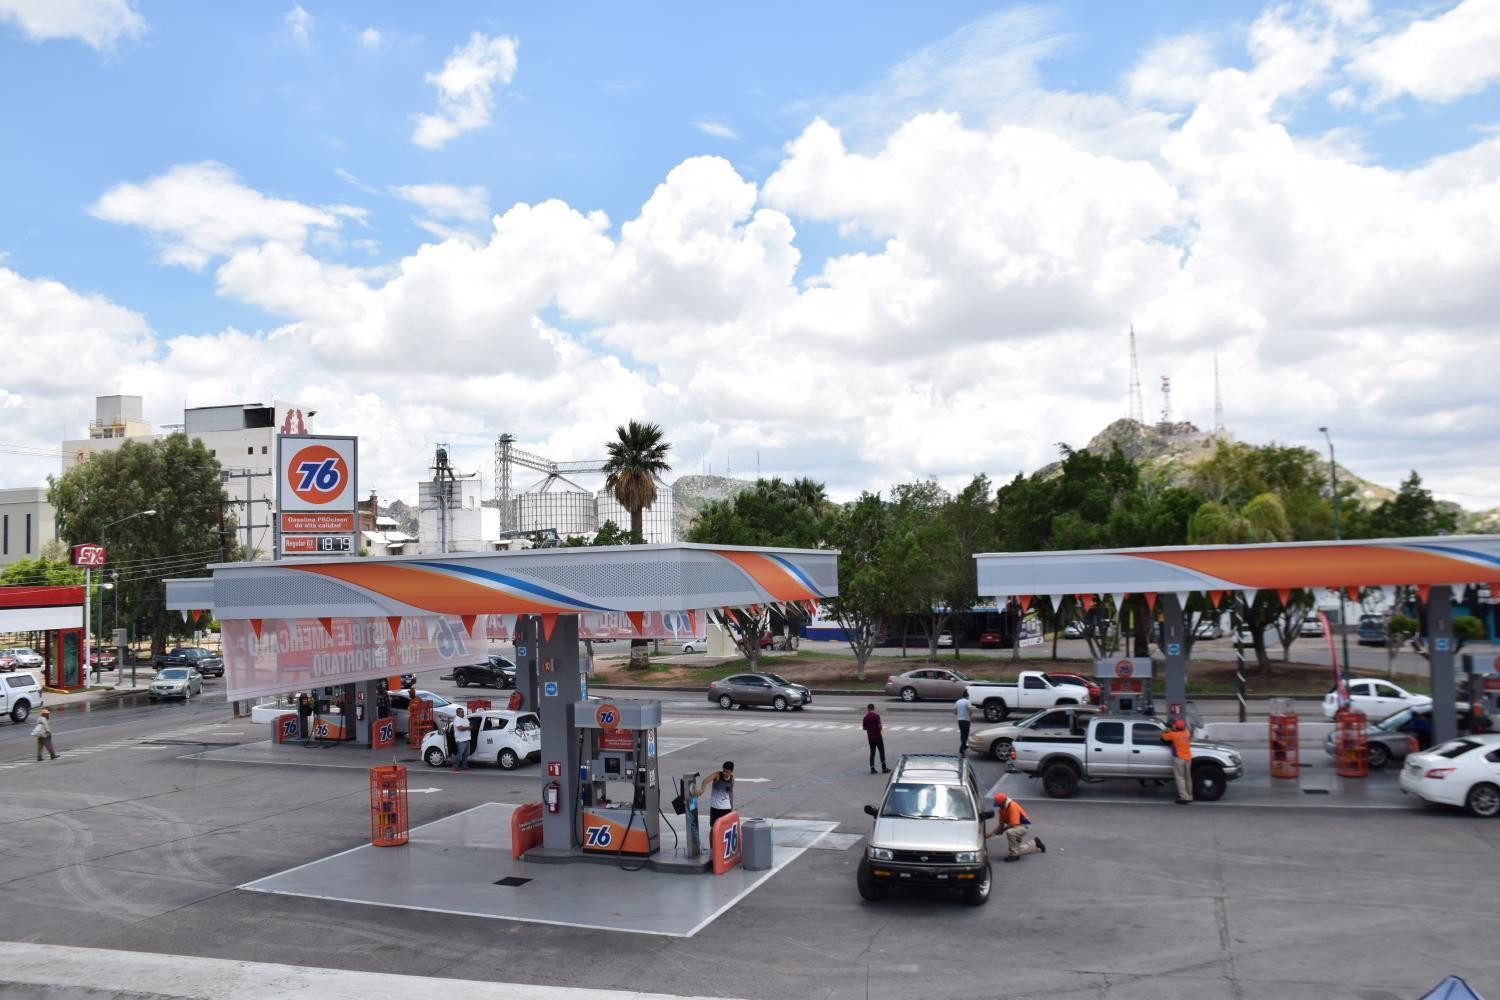 76 gas station in Hermosillo, Sonora